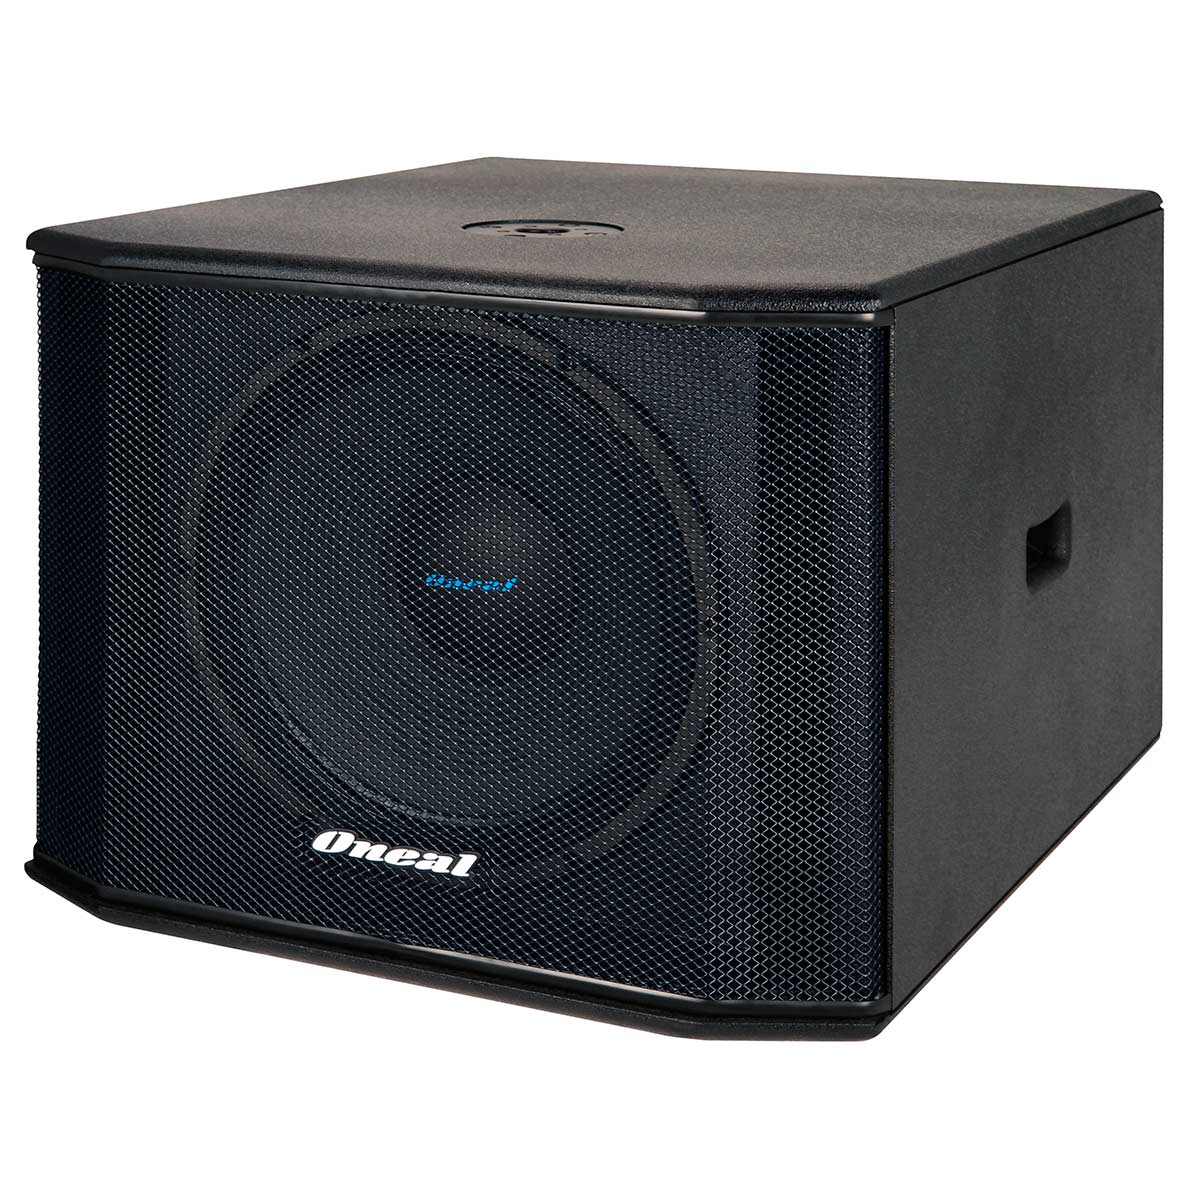 OBSB2218 - Subwoofer Passivo 300W OBSB 2218 - Oneal